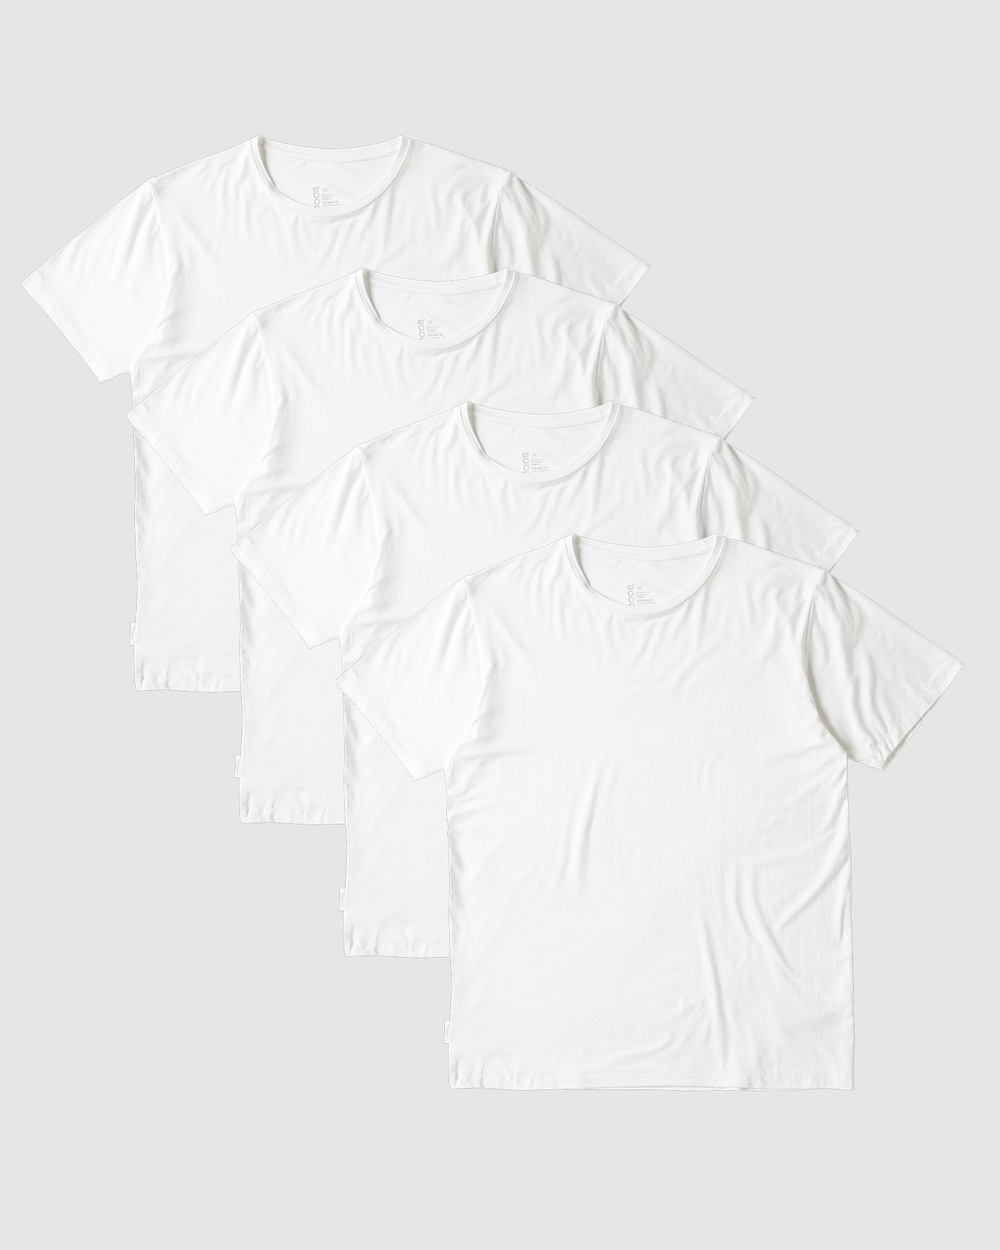 Boody Organic Bamboo Eco Wear - 4 Pack Crew Neck T Shirt - T-Shirts & Singlets (White) 4 Pack Crew Neck T-Shirt